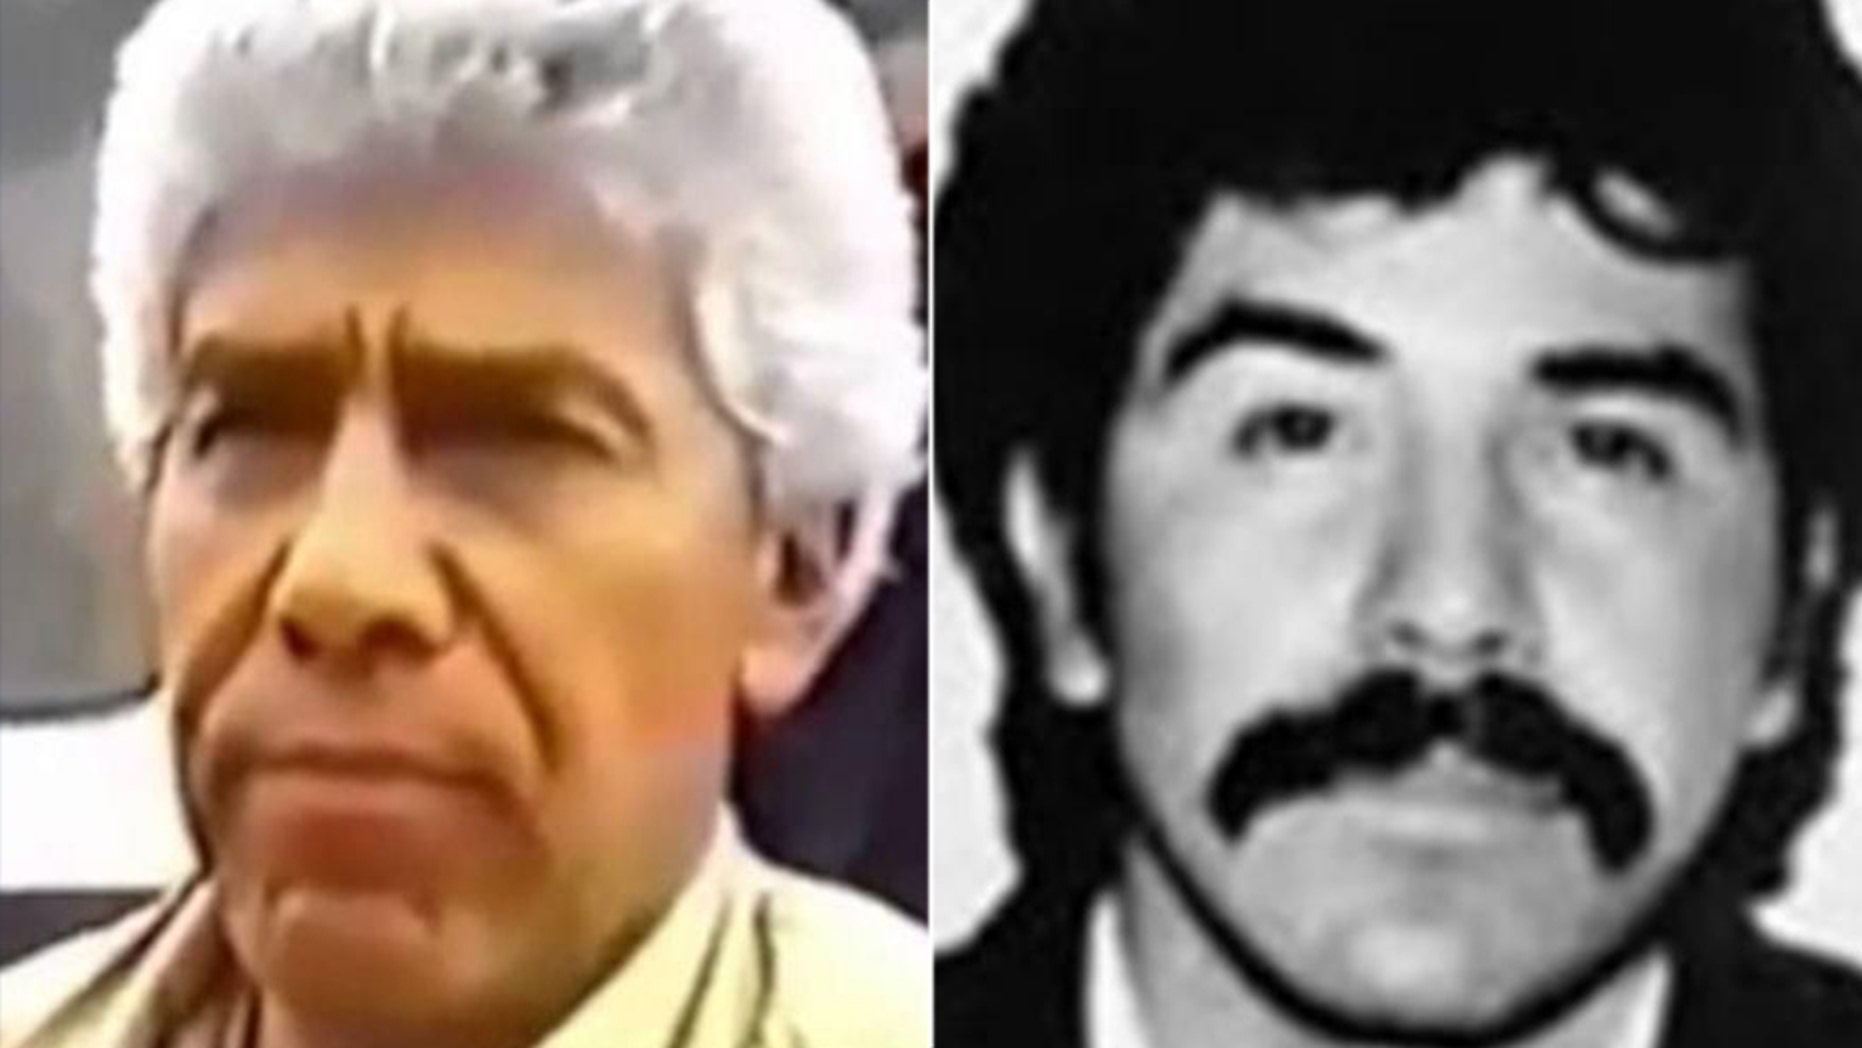 Notorious Mexican drug lord who murdered DEA agent in 1985